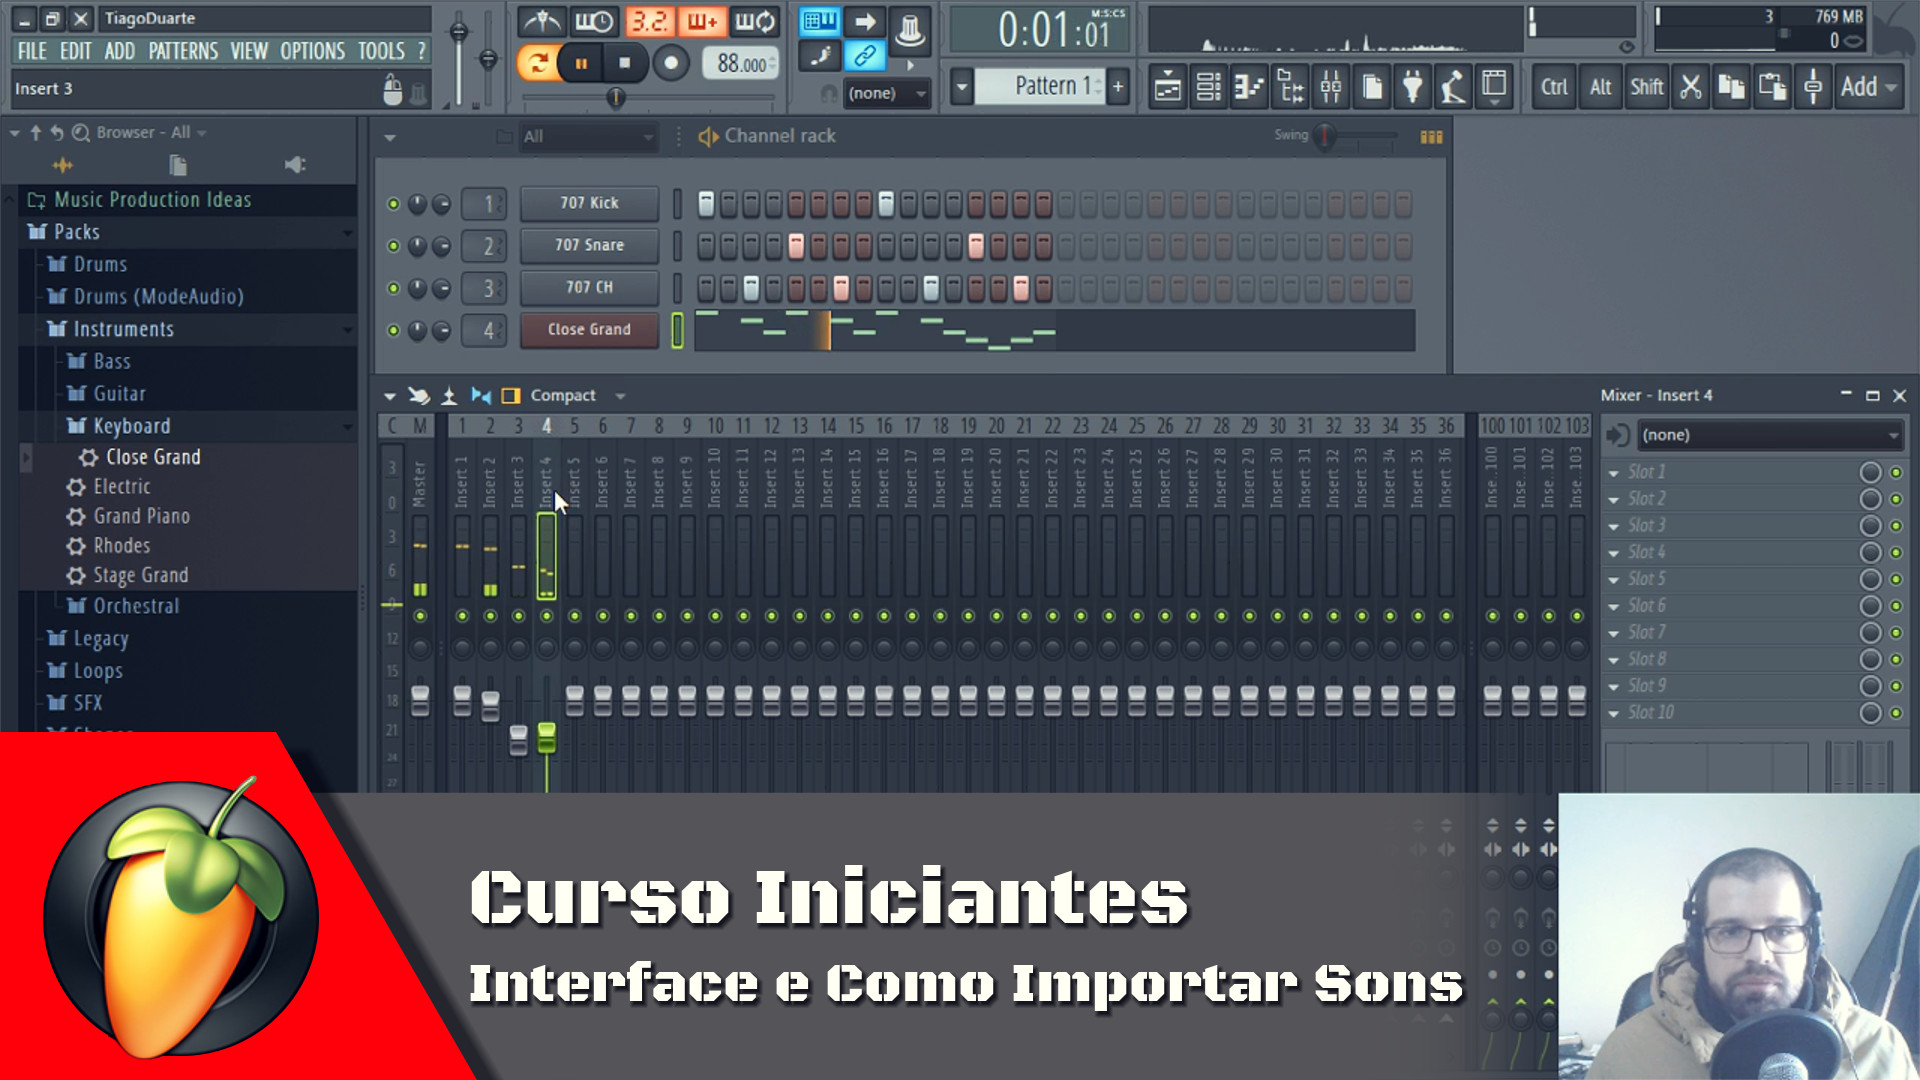 Interface e Como Importar Sons